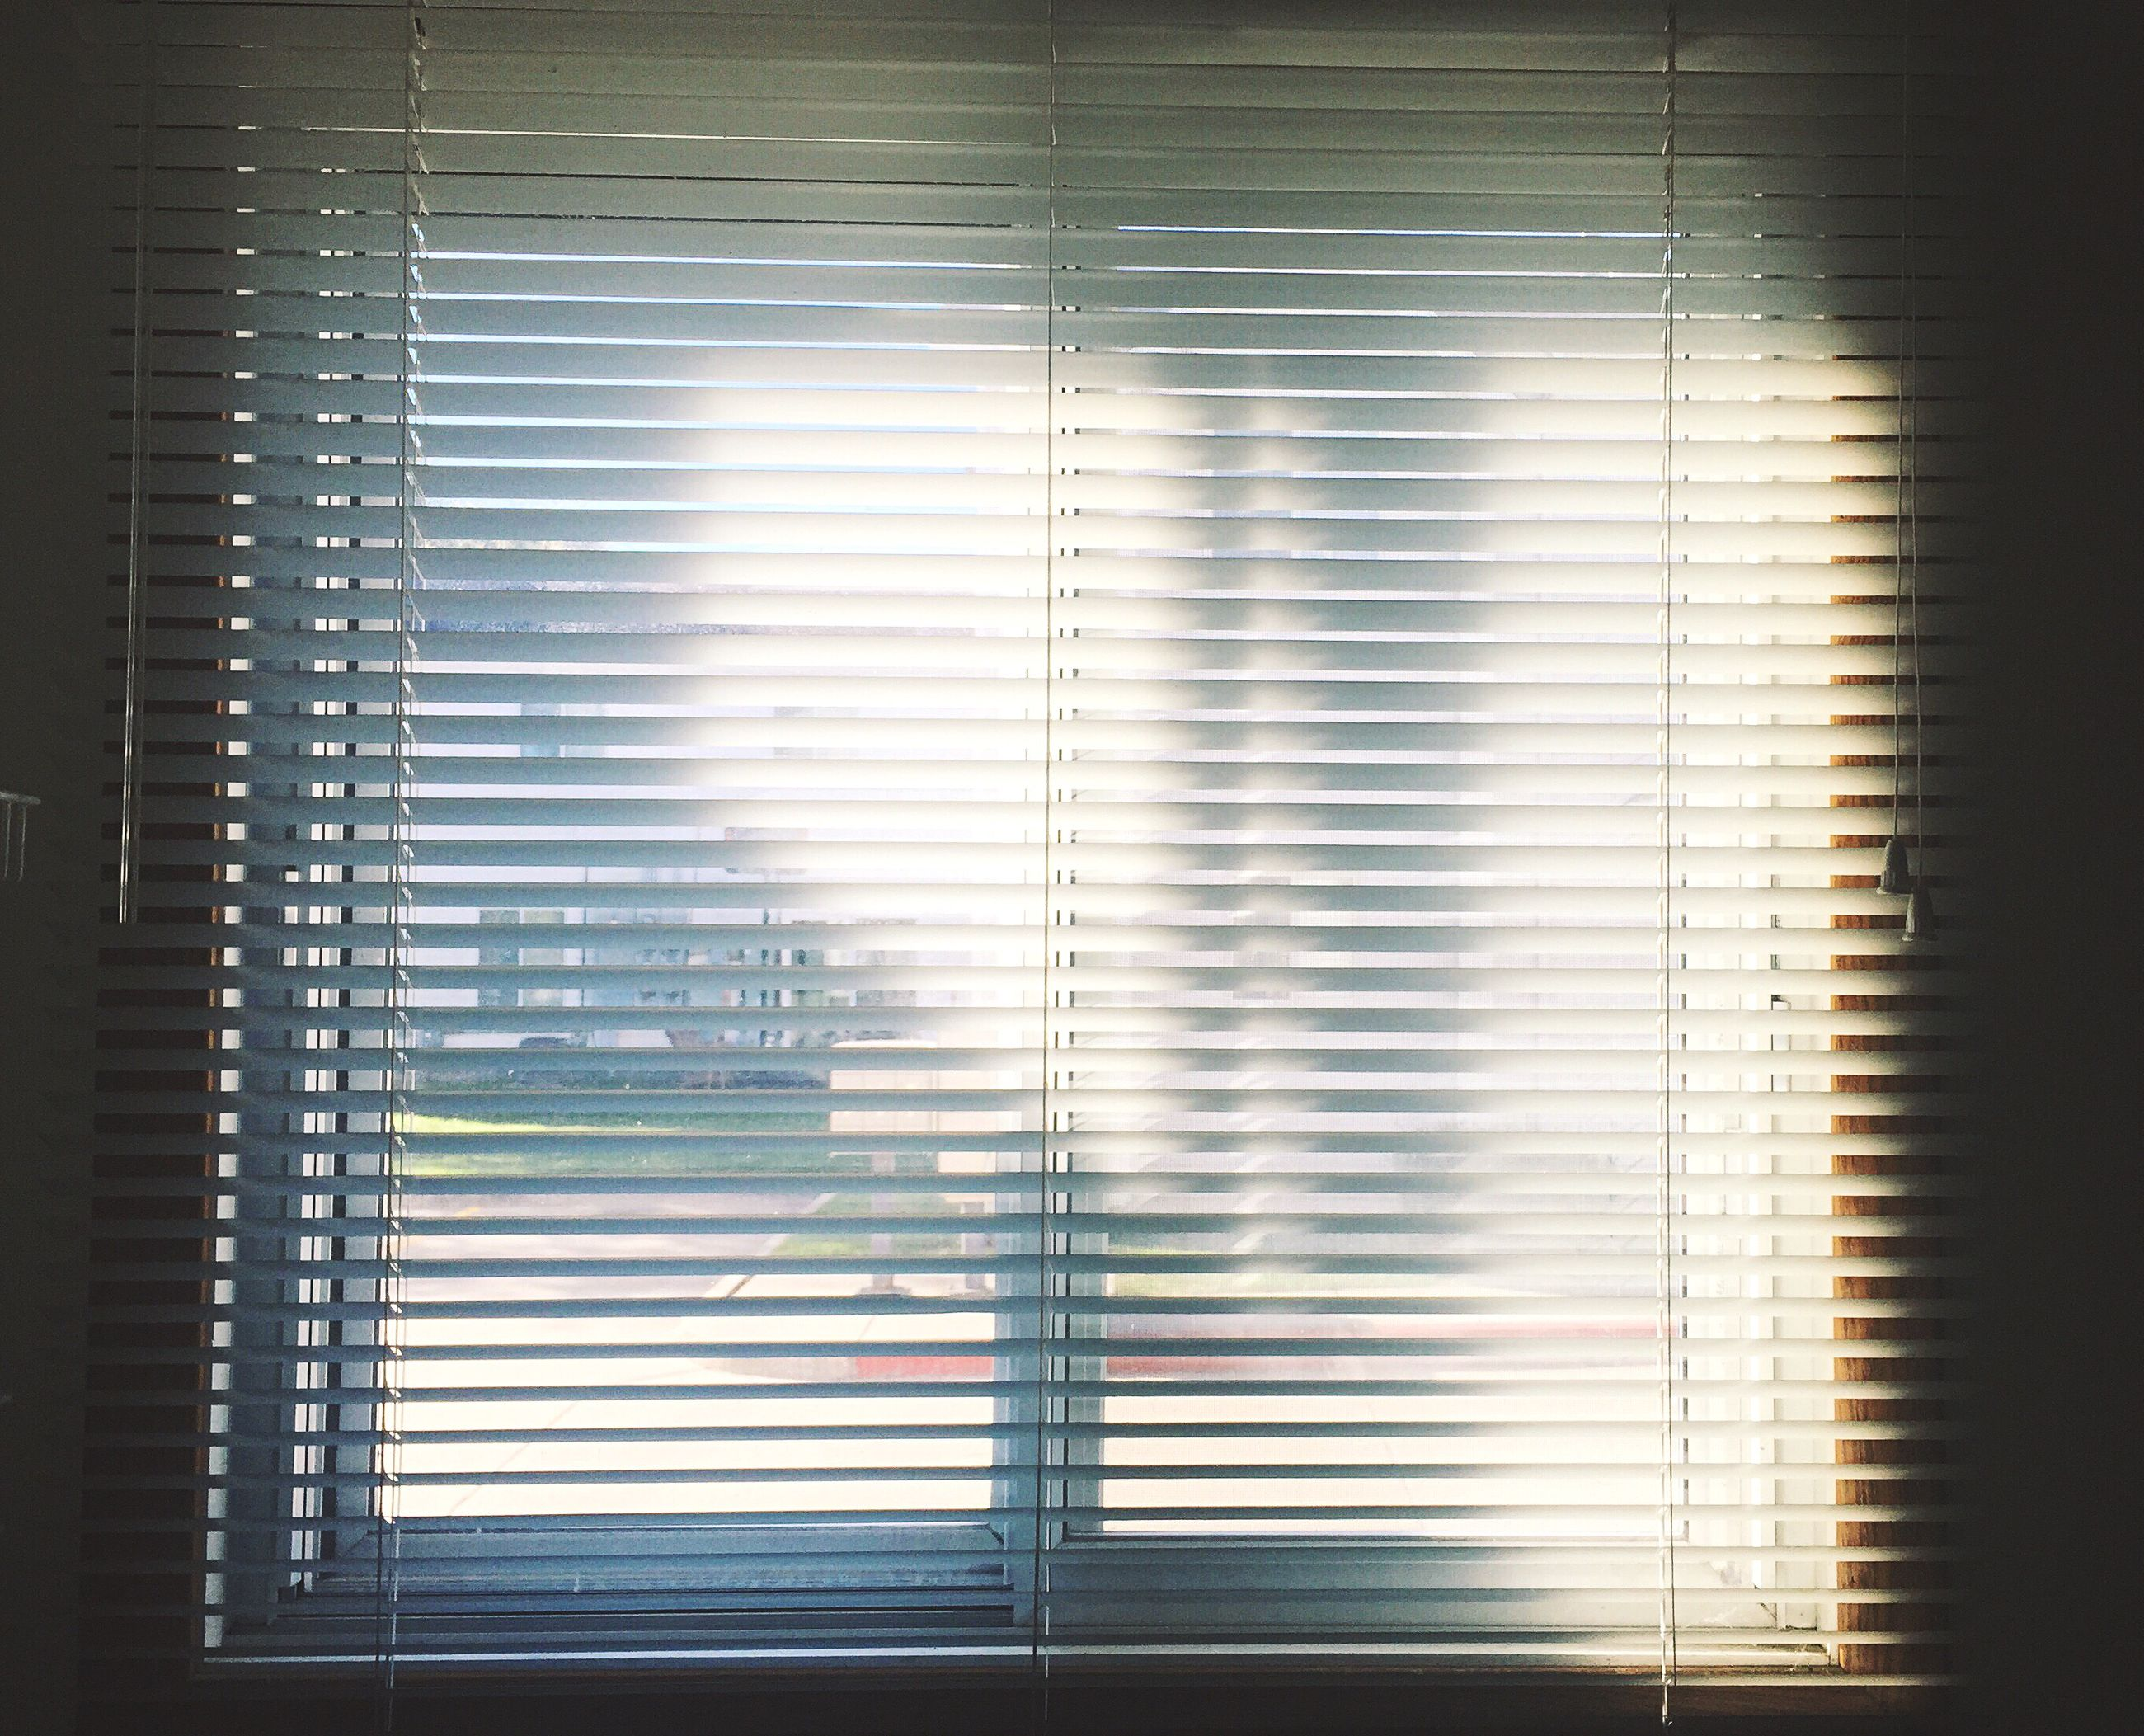 indoors, window, wall - building feature, blinds, curtain, pattern, closed, built structure, wall, architecture, full frame, home interior, backgrounds, glass - material, close-up, no people, shadow, house, sunlight, reflection